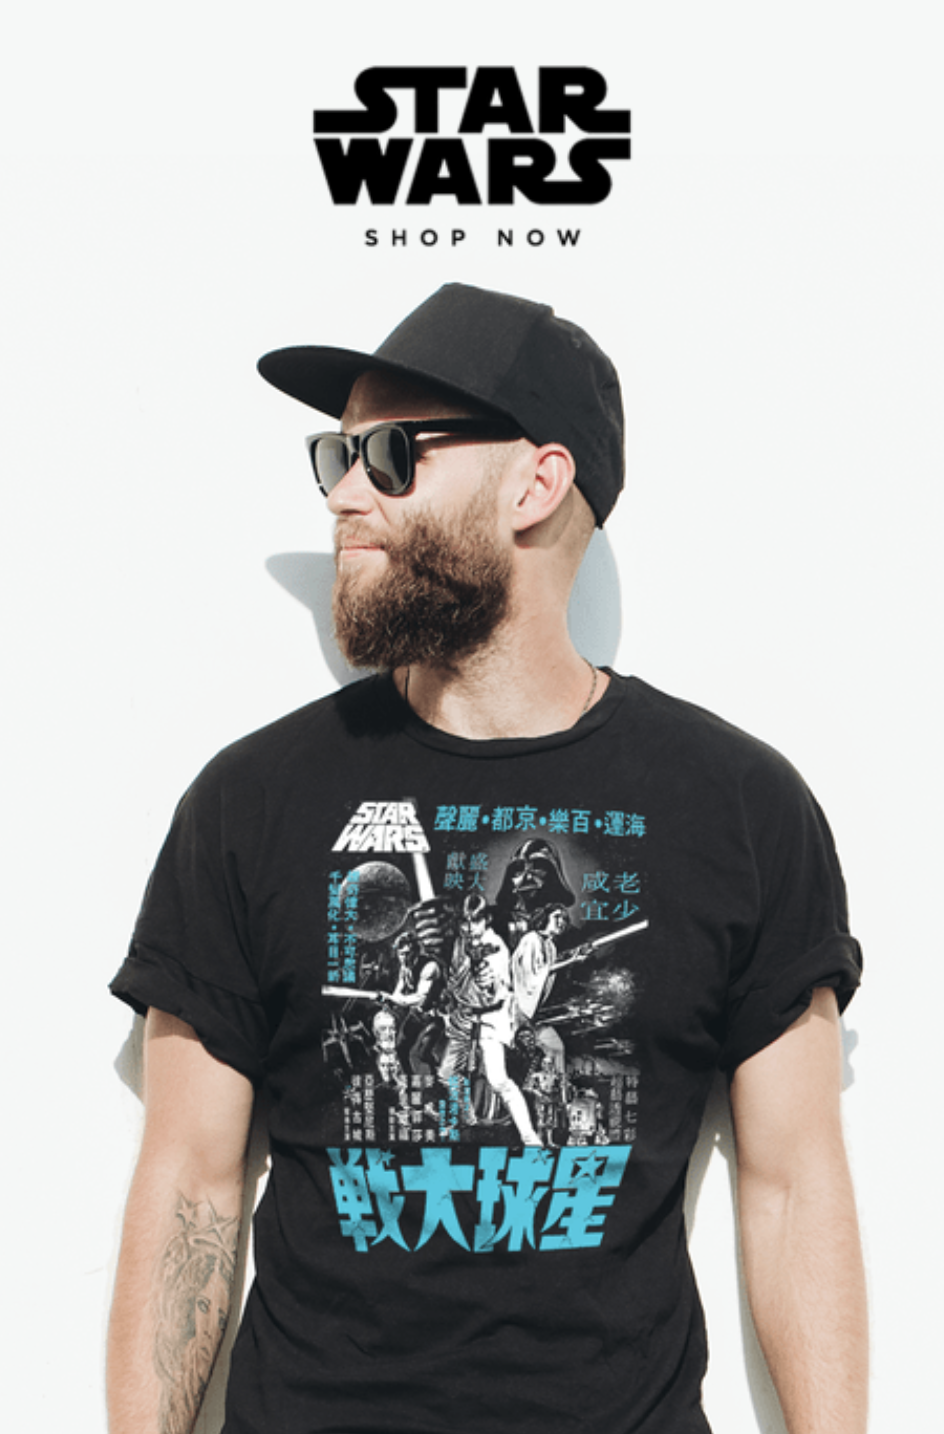 Star Wars T-Shirts on Design By Humans